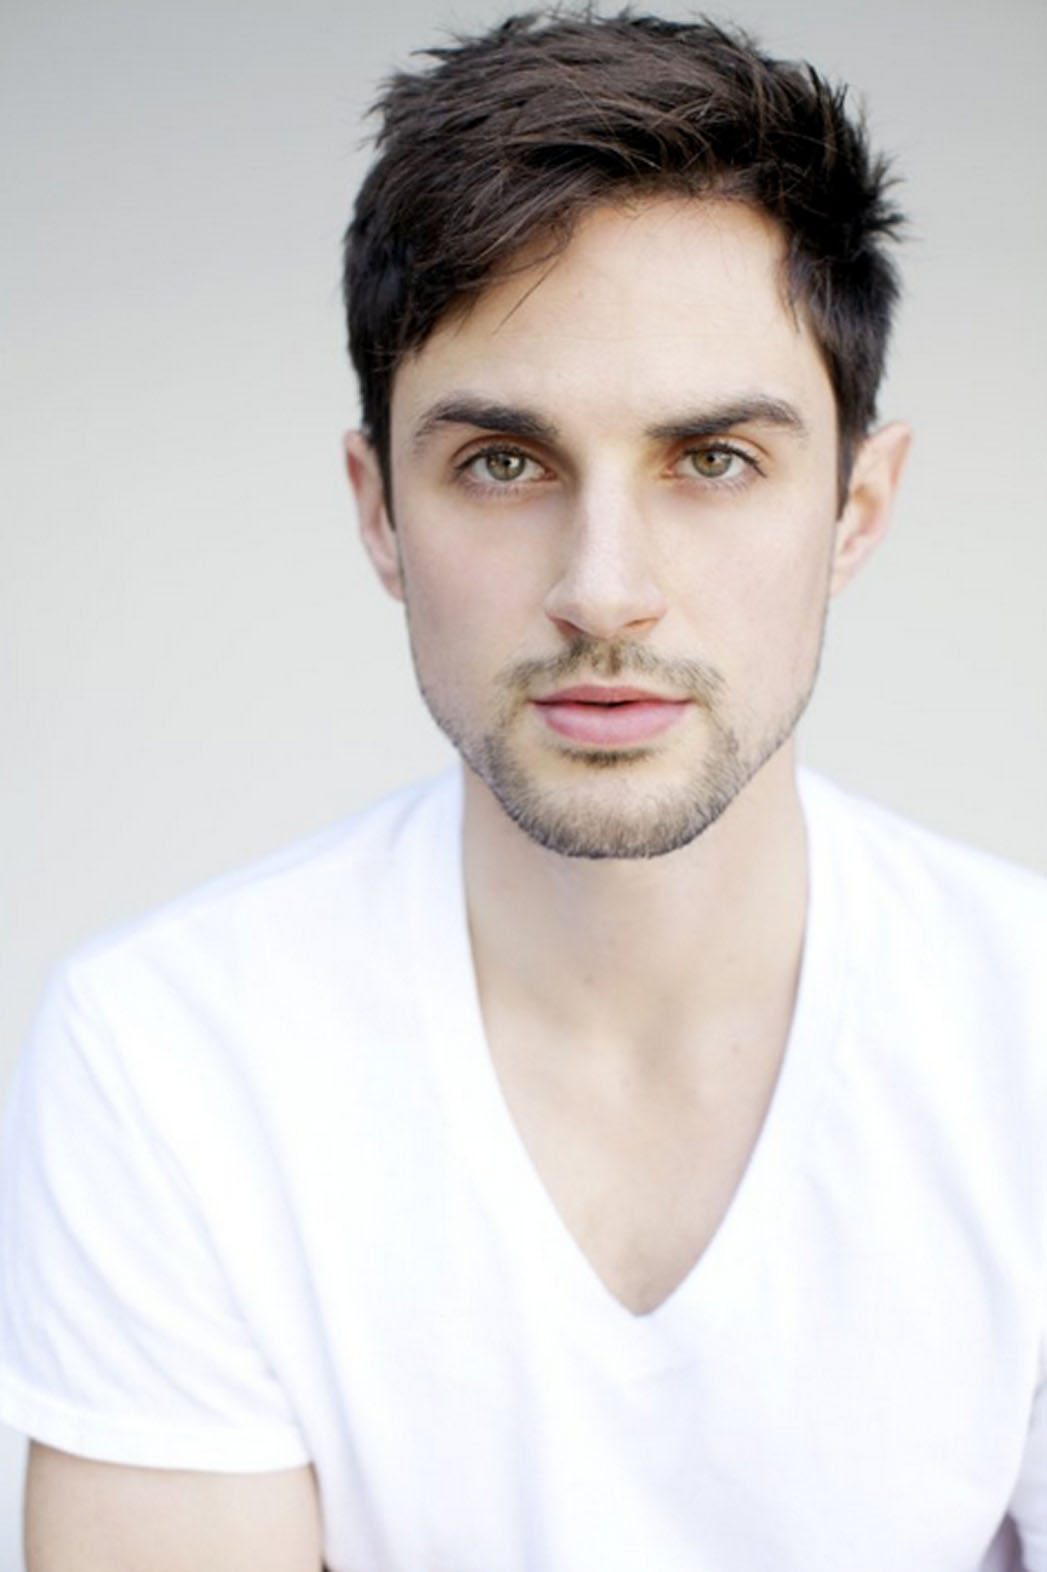 Andrew J. West Headshot - P 2013